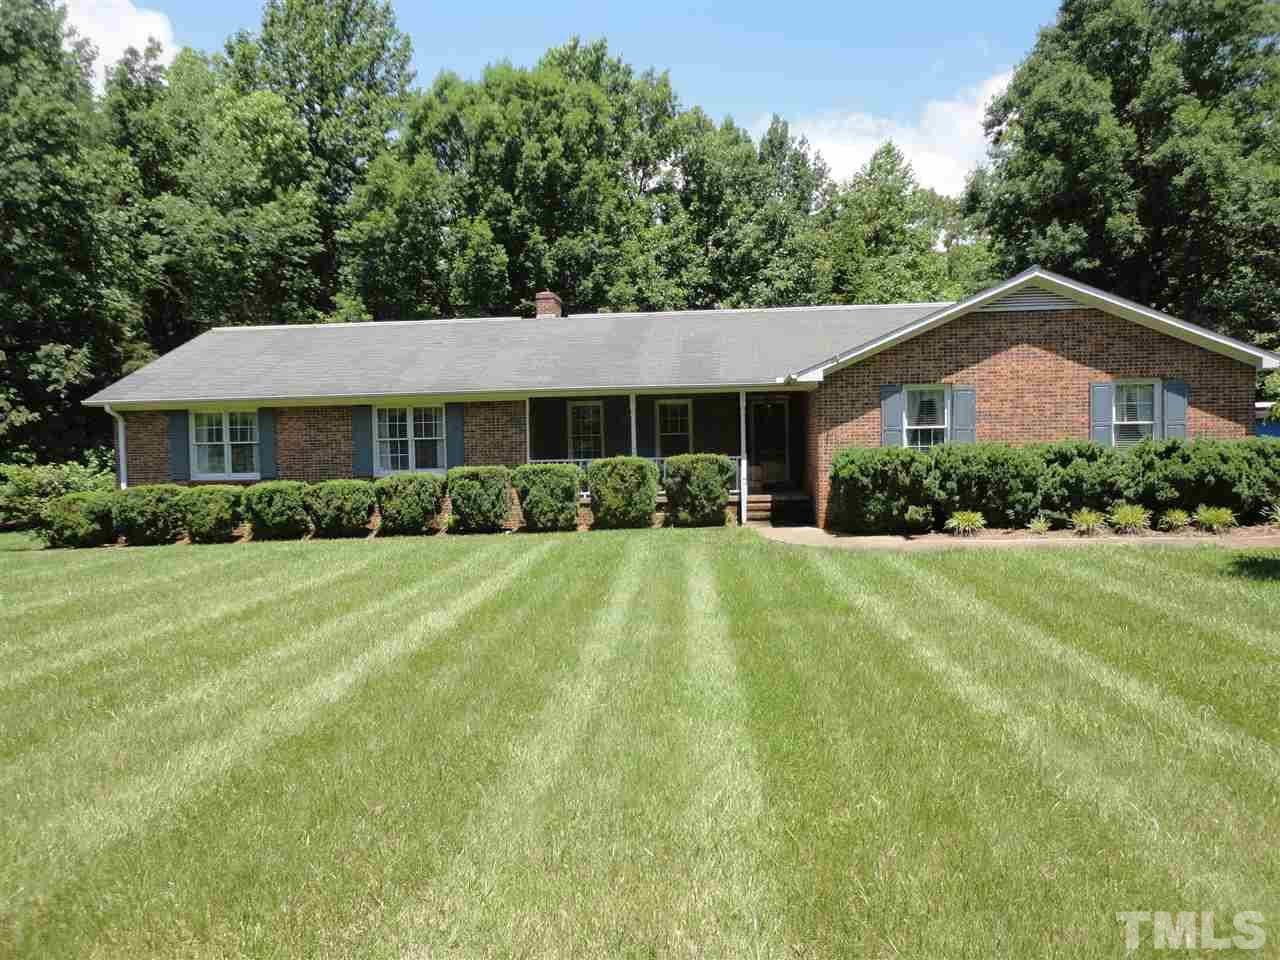 181 Staley Boswell Rd, Yanceyville, NC